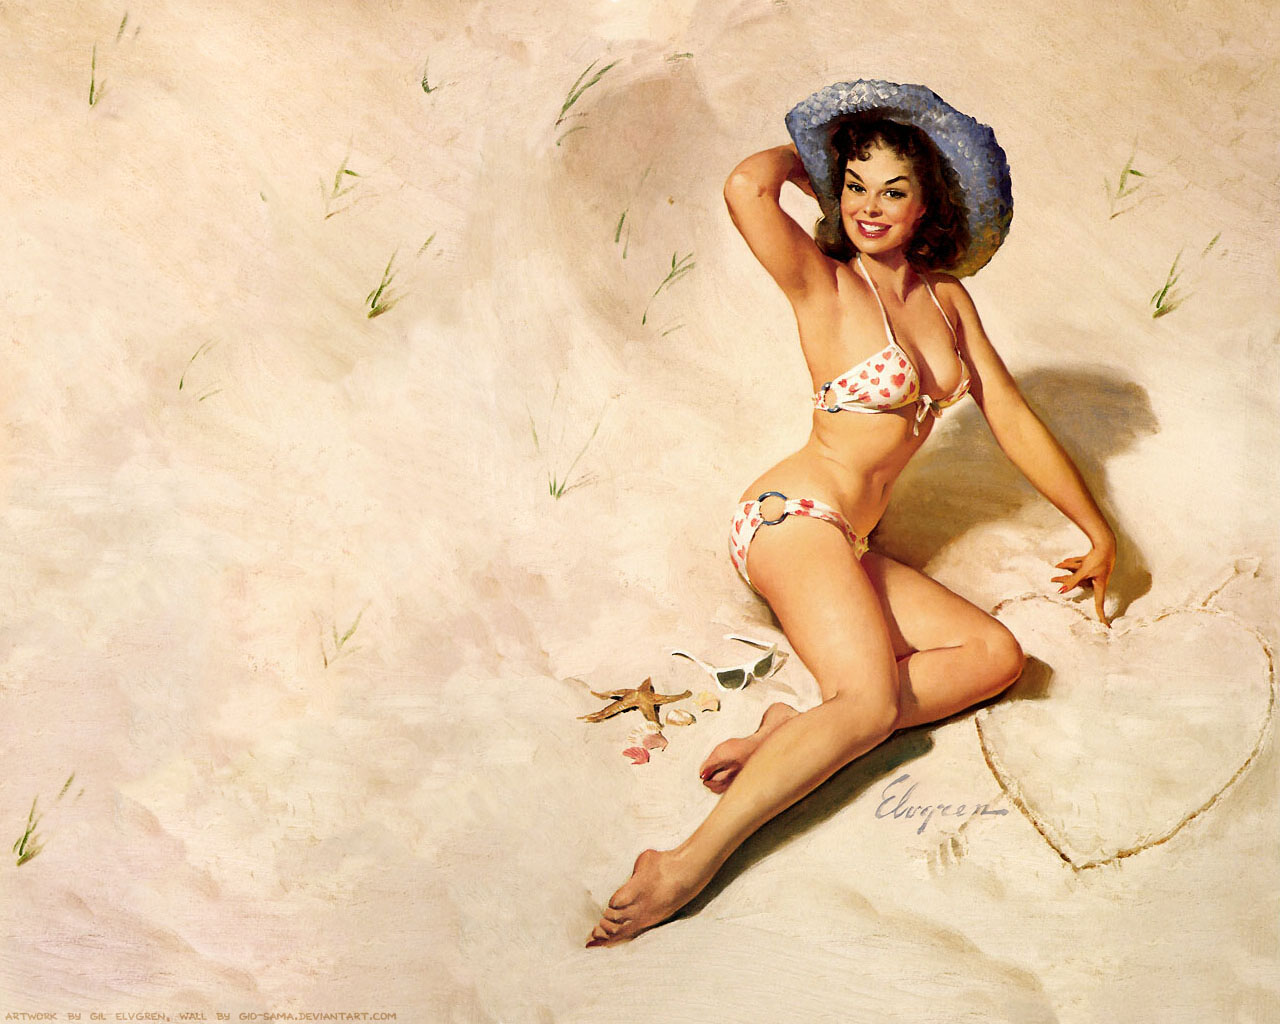 Japan Pin Up Art http://thepinupart.blogspot.com/2012/08/beach-pin-up.html